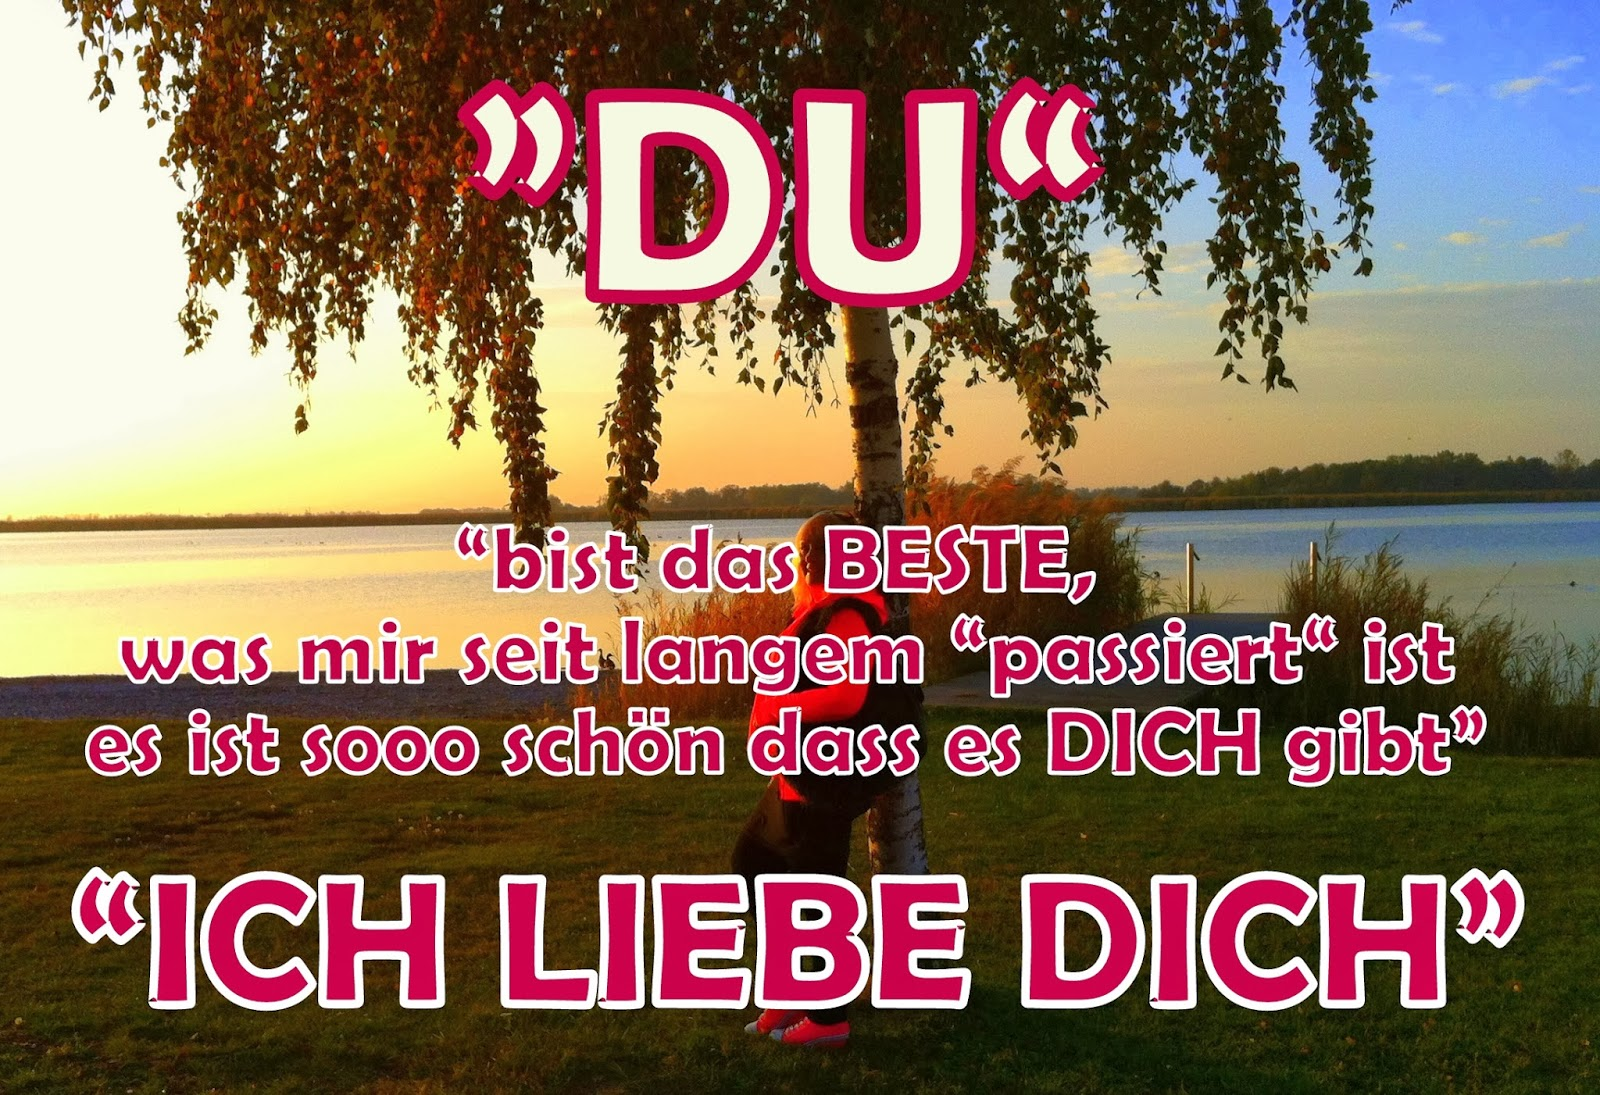 Licht-volle Tages-impulse: 02.02.14 - 09.02.14